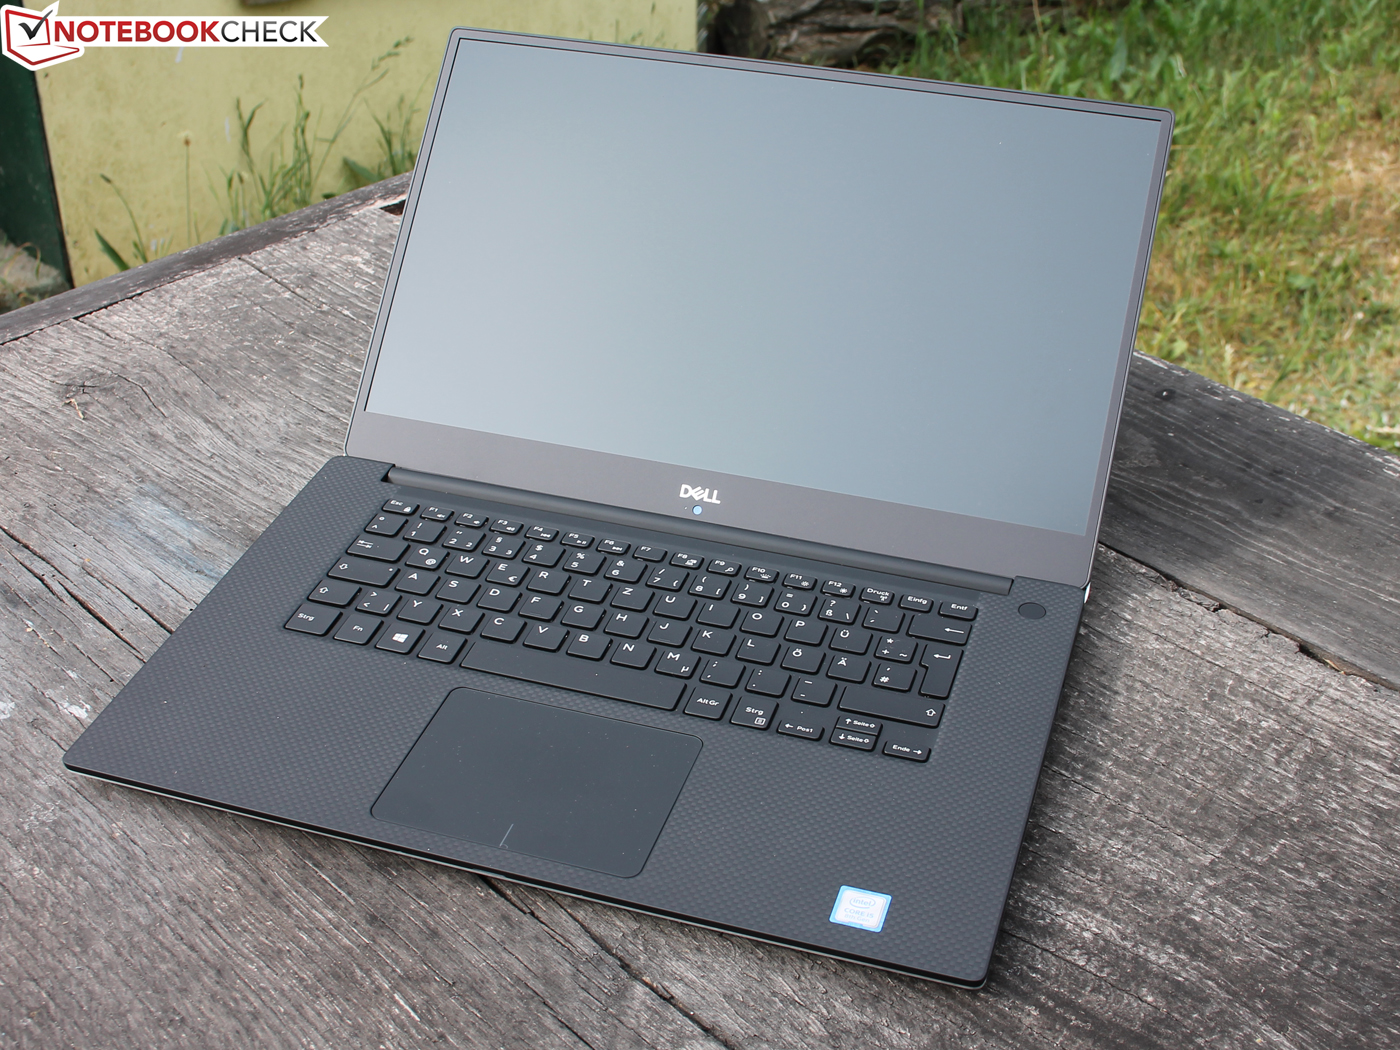 Xps 15 – Wonderful Image Gallery